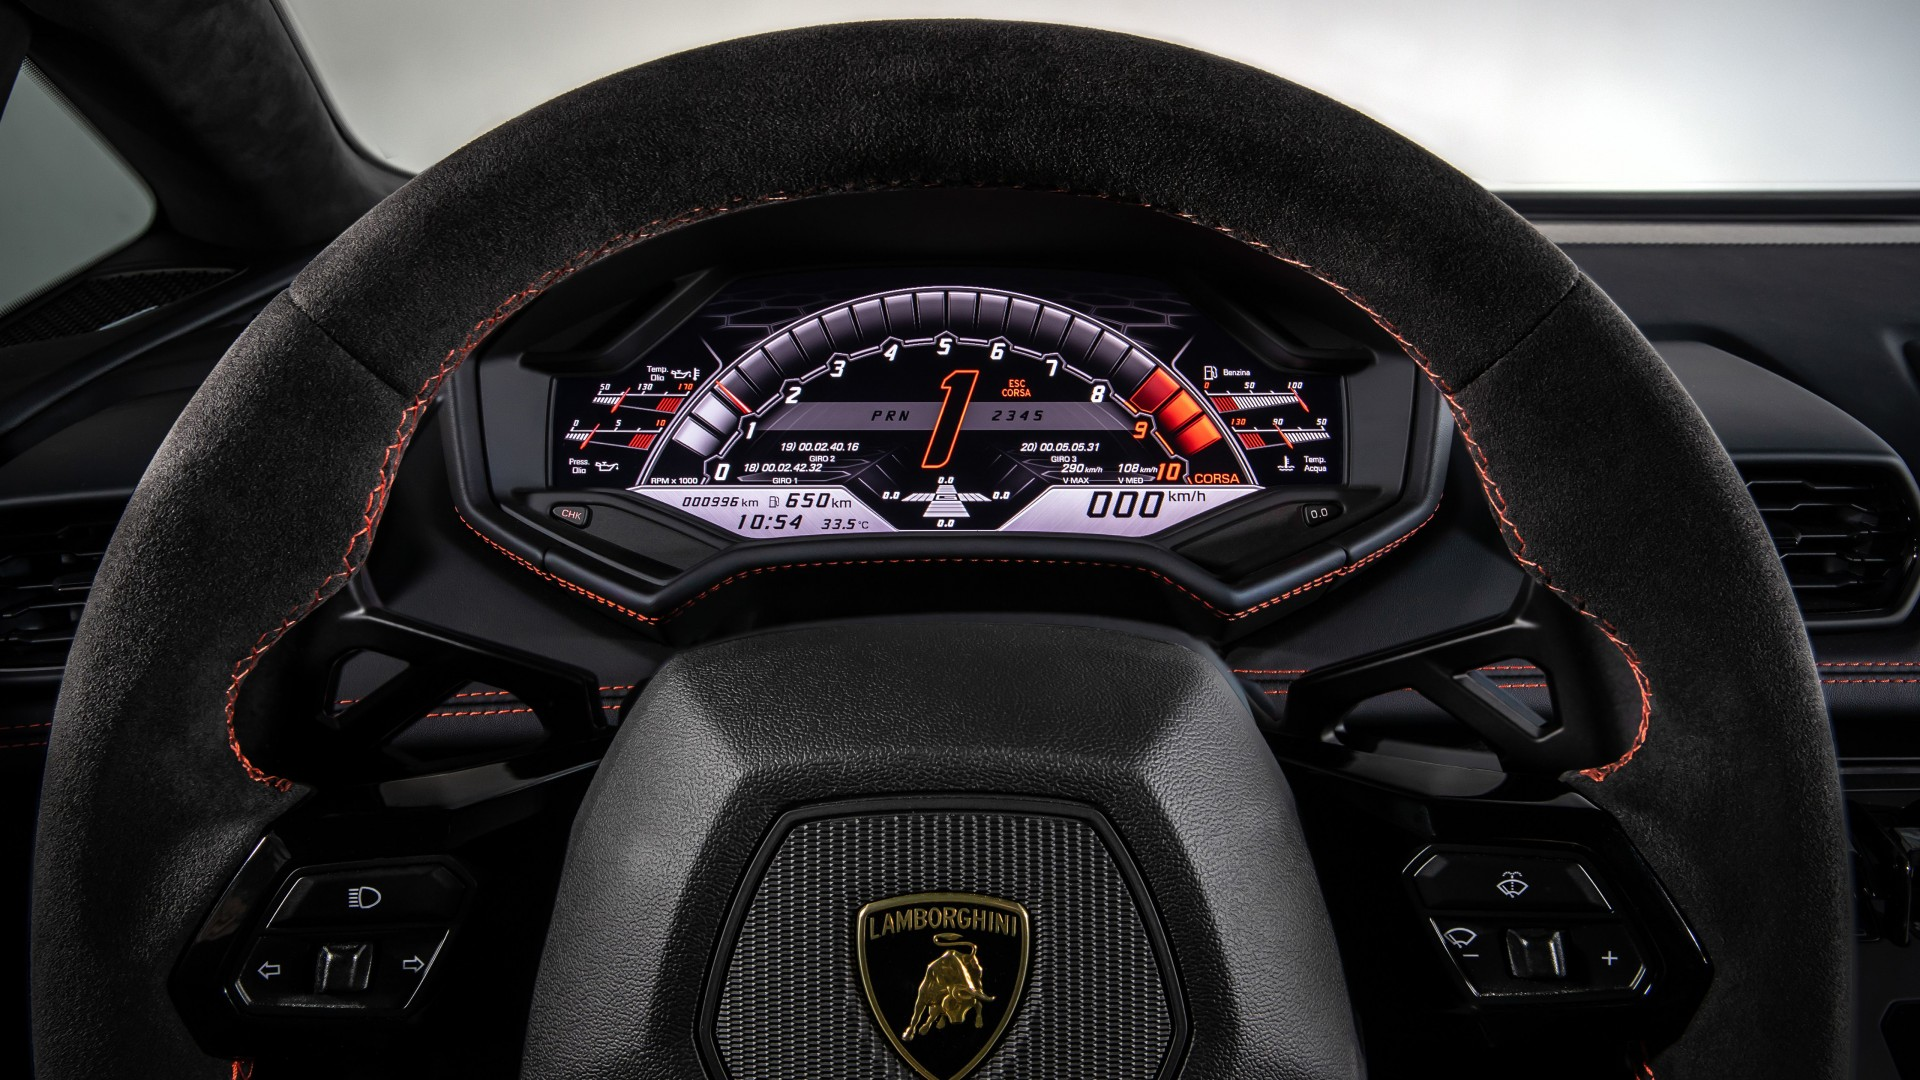 Lamborghini Huracan EVO Interior 2019 5K Wallpaper | HD ...